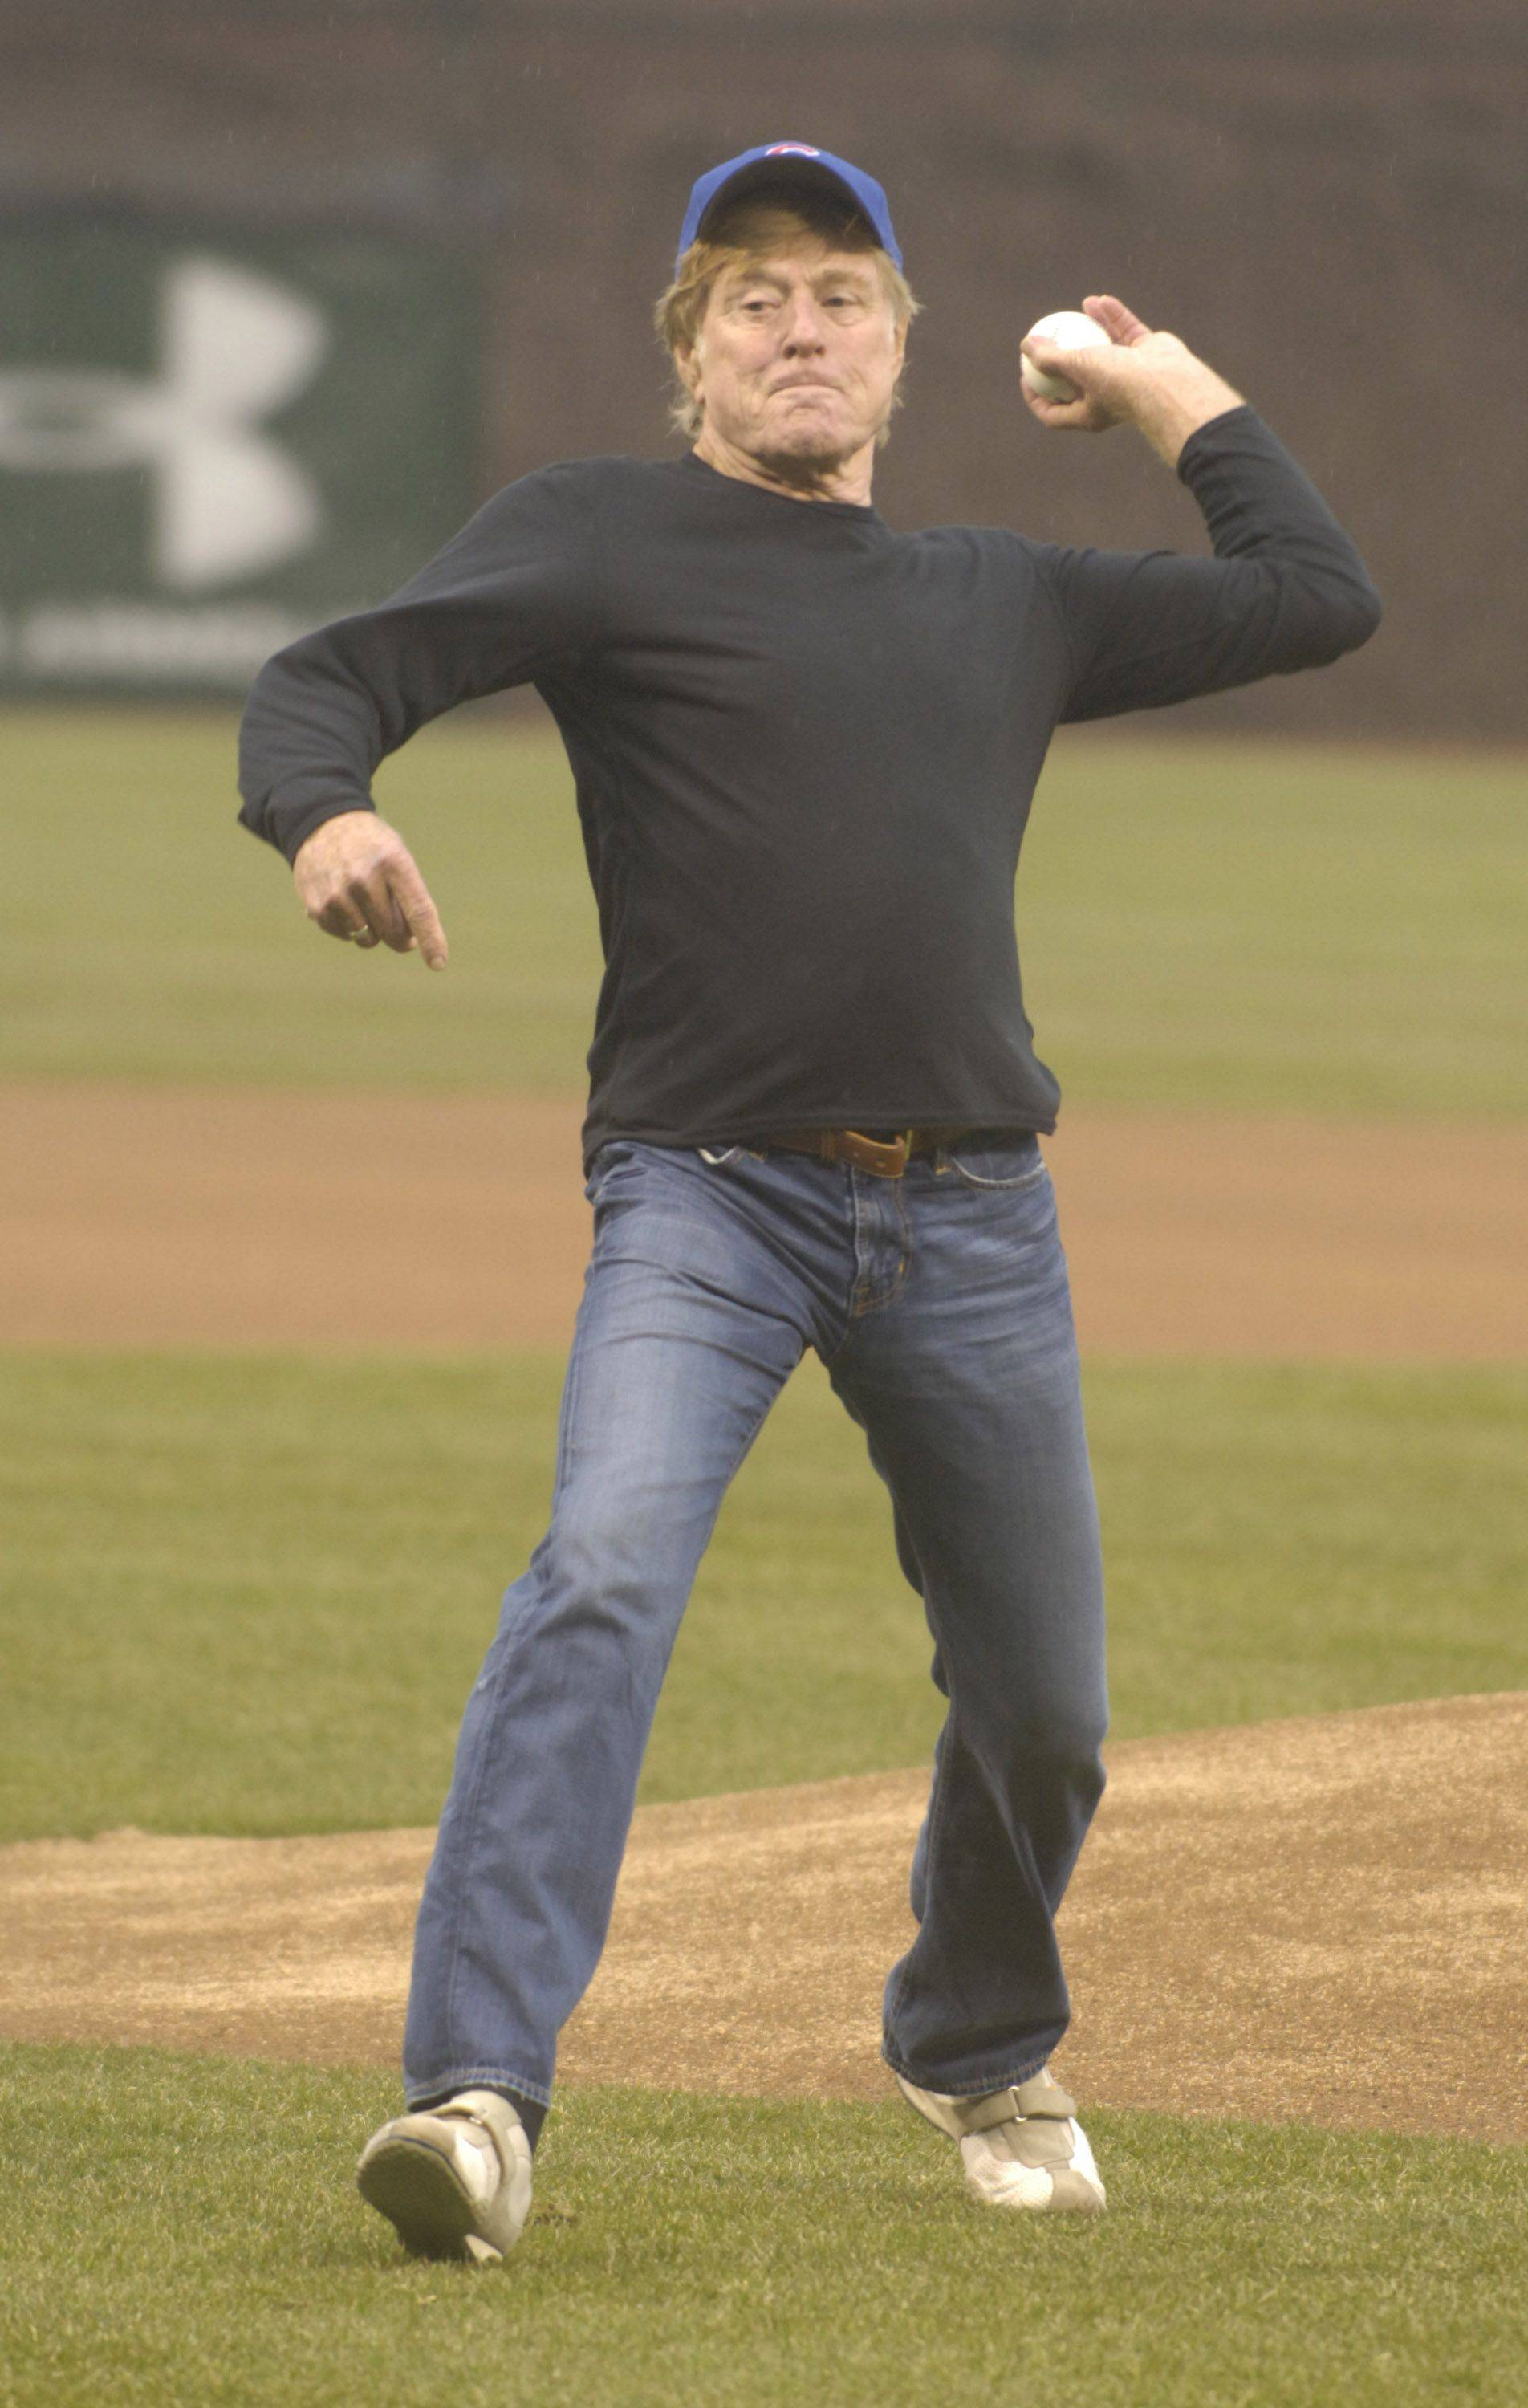 Actor and director Robert Redford throws out the first pitch.